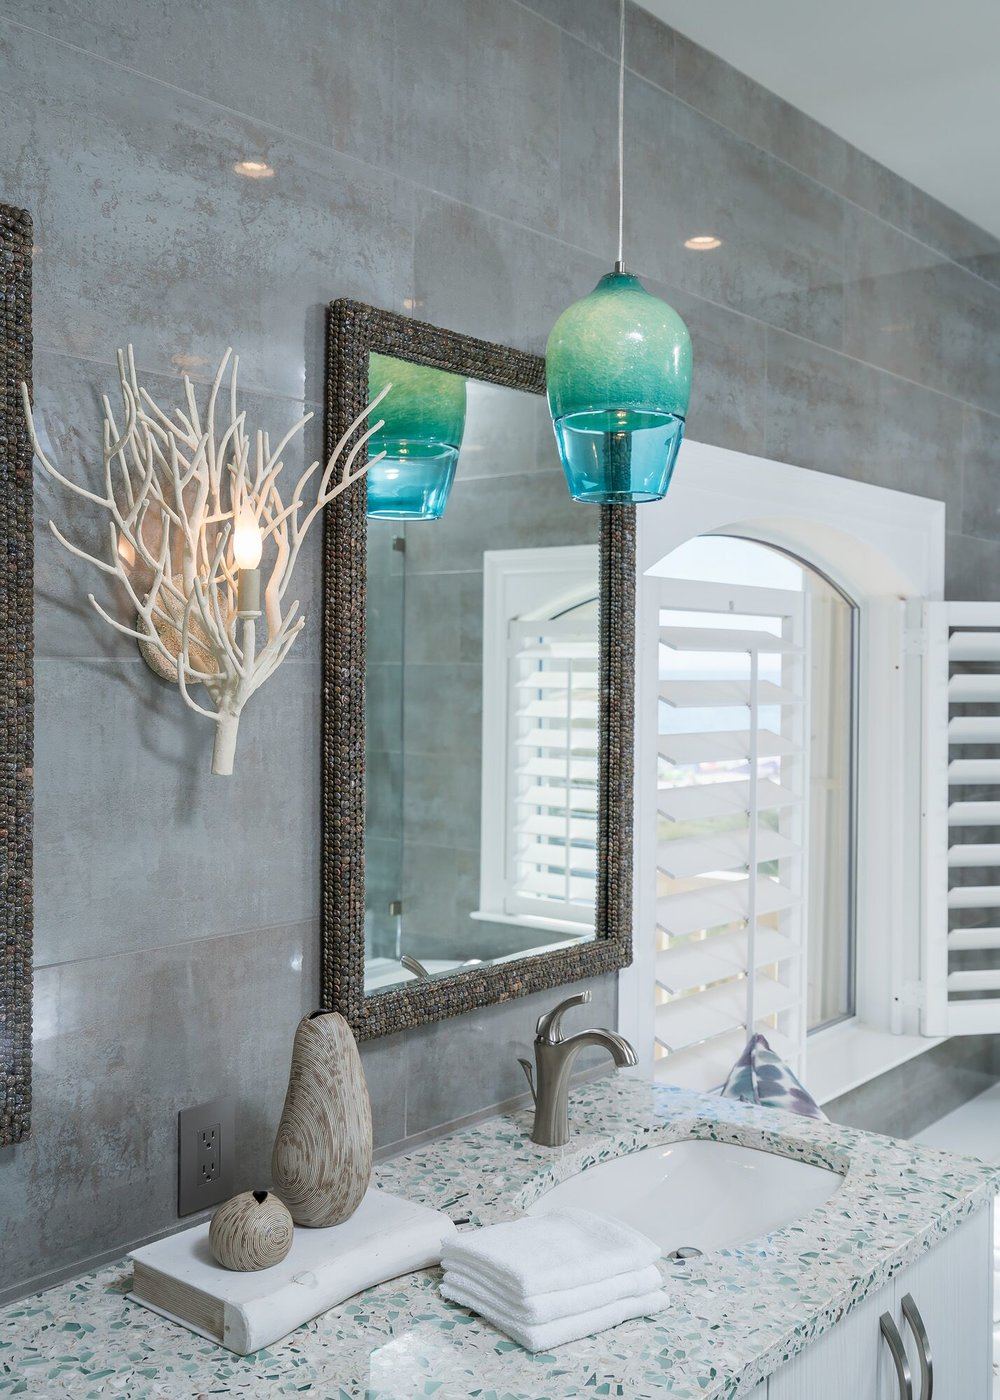 DESIGNER SPOTLIGHT - Cheryl Kees Clendenon, #vanity #bathroom #masterbath #vetrazzo #bathroomdesign